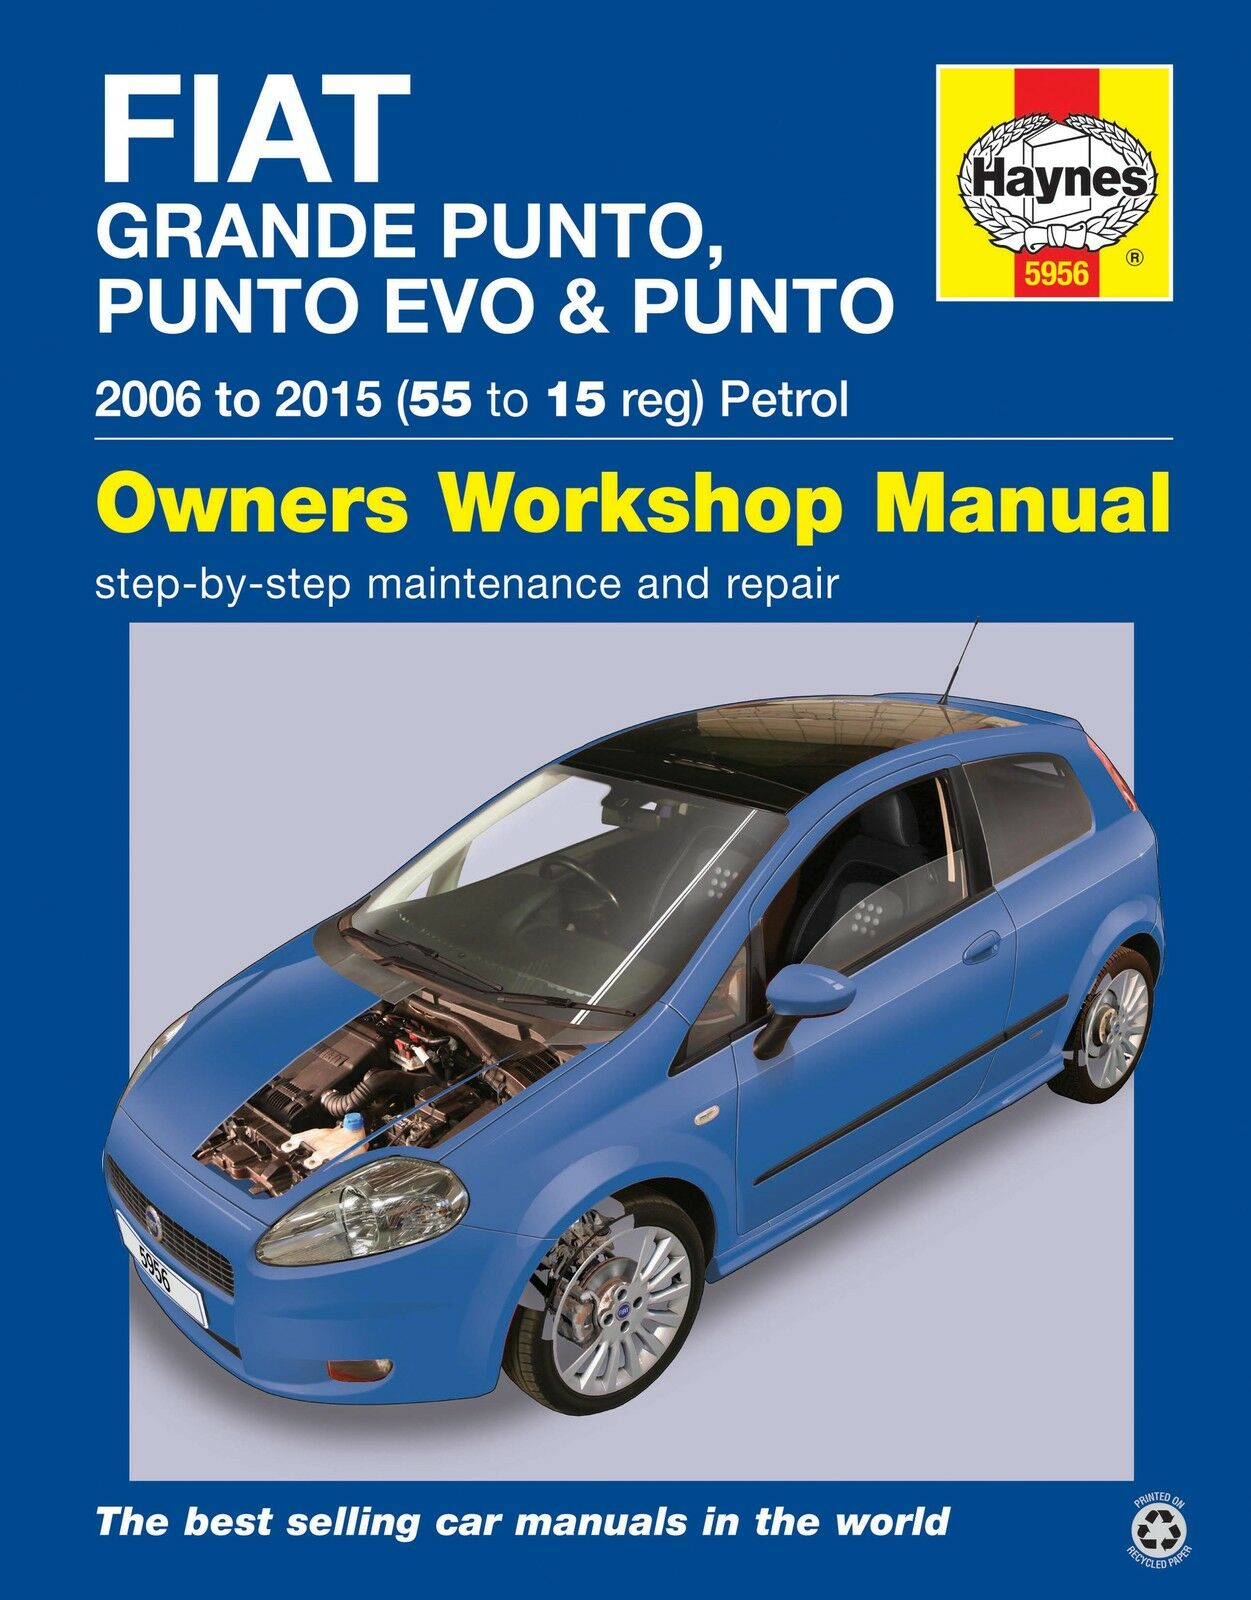 Fiat Grande Punto Evo Repair Manual Haynes Manual Service Manual 2006-2015  1 of 1 See More